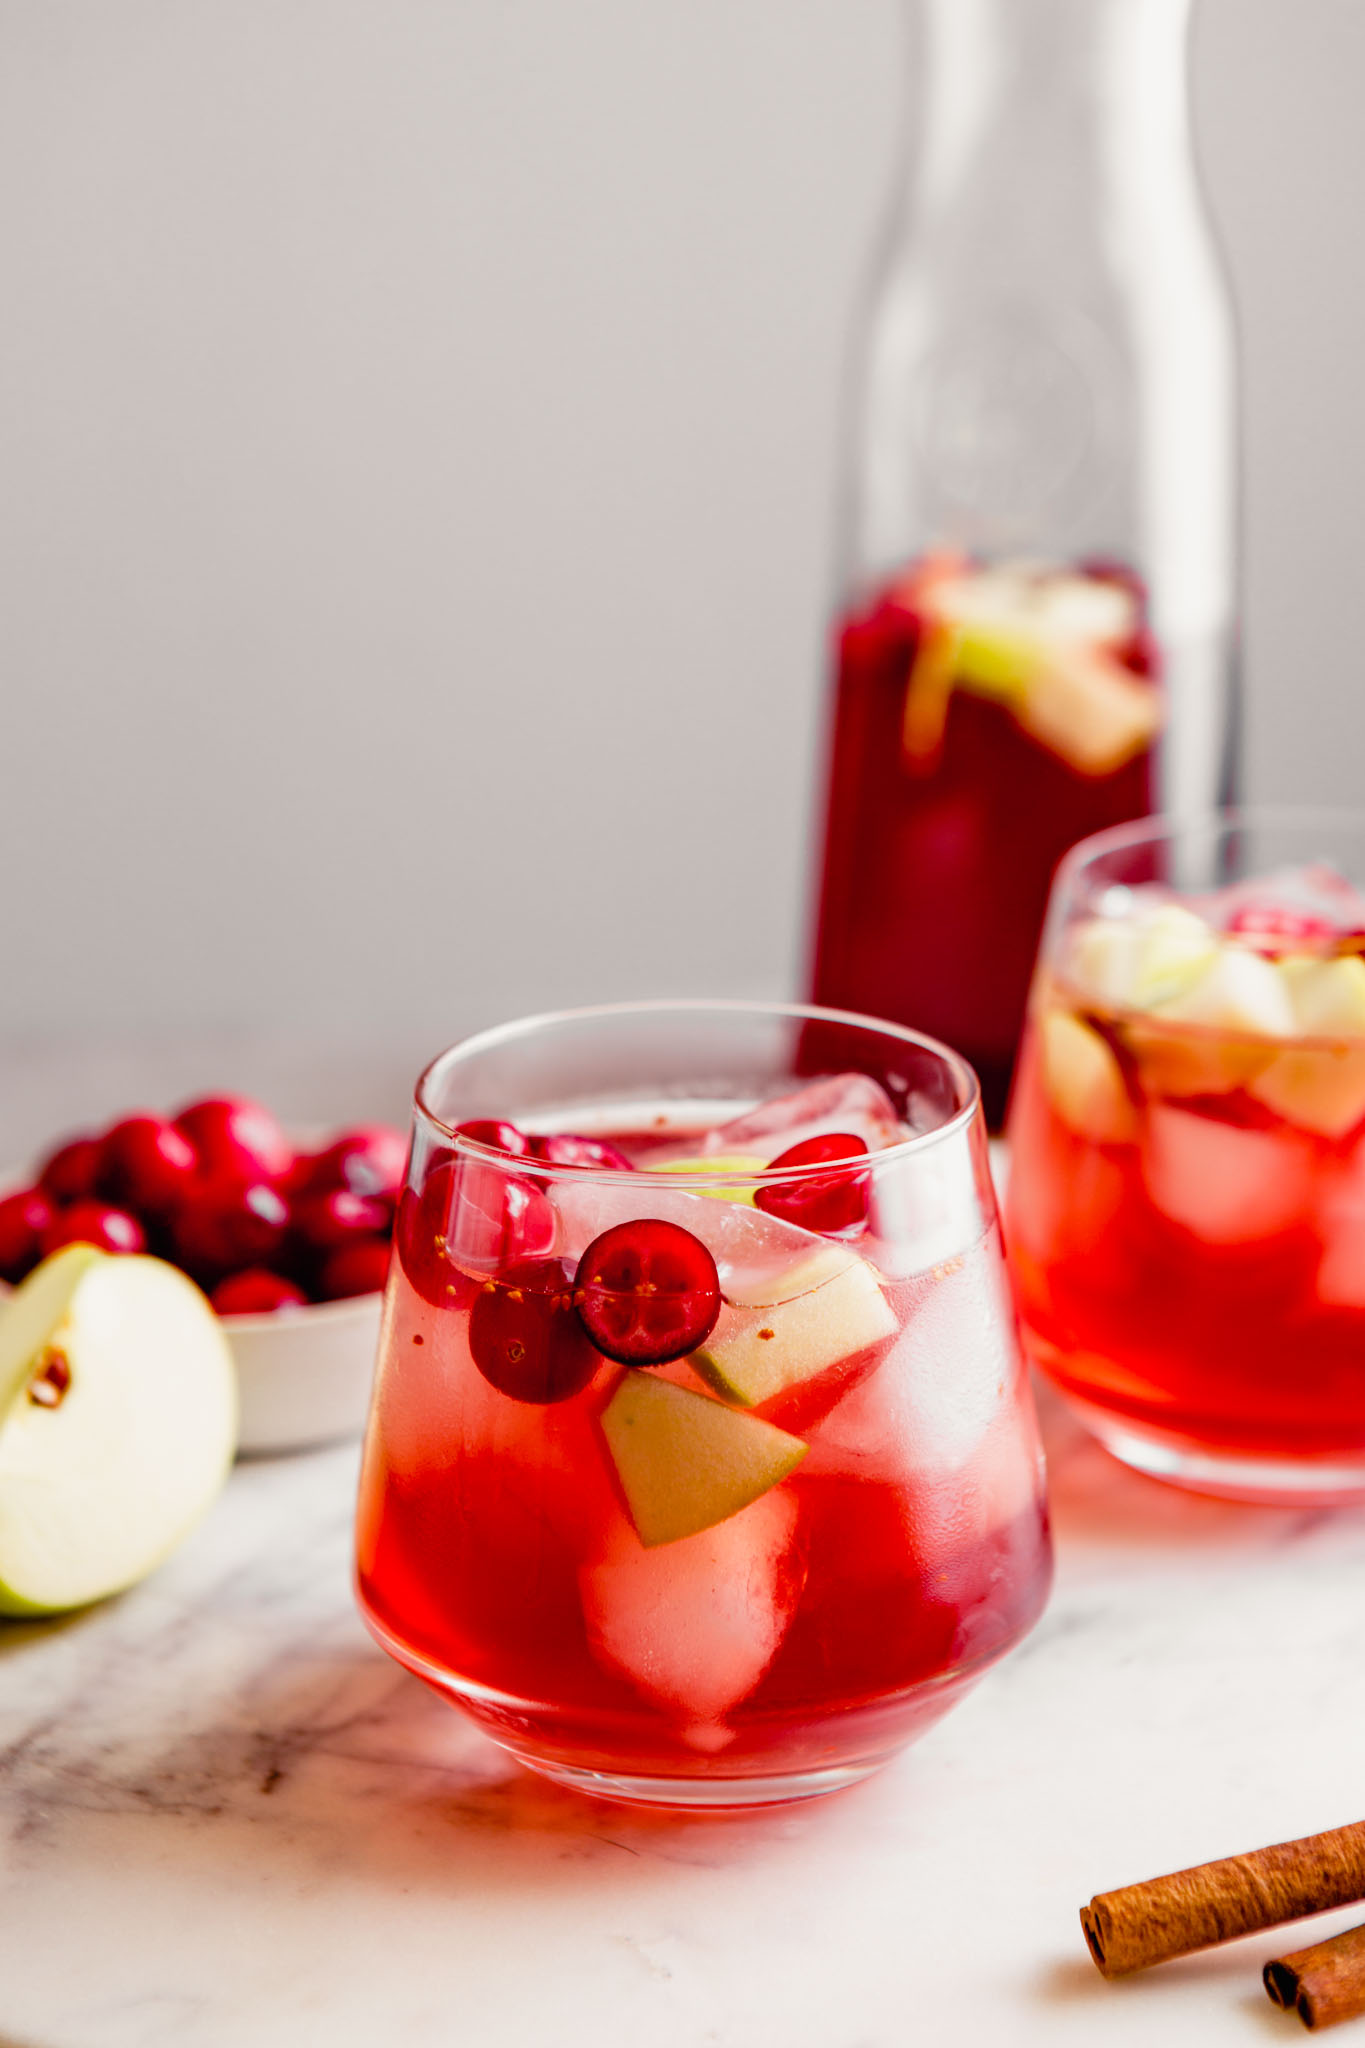 Photograph of two glasses of rose sangria set on a marble platter with a pitcher of sangria in the background.